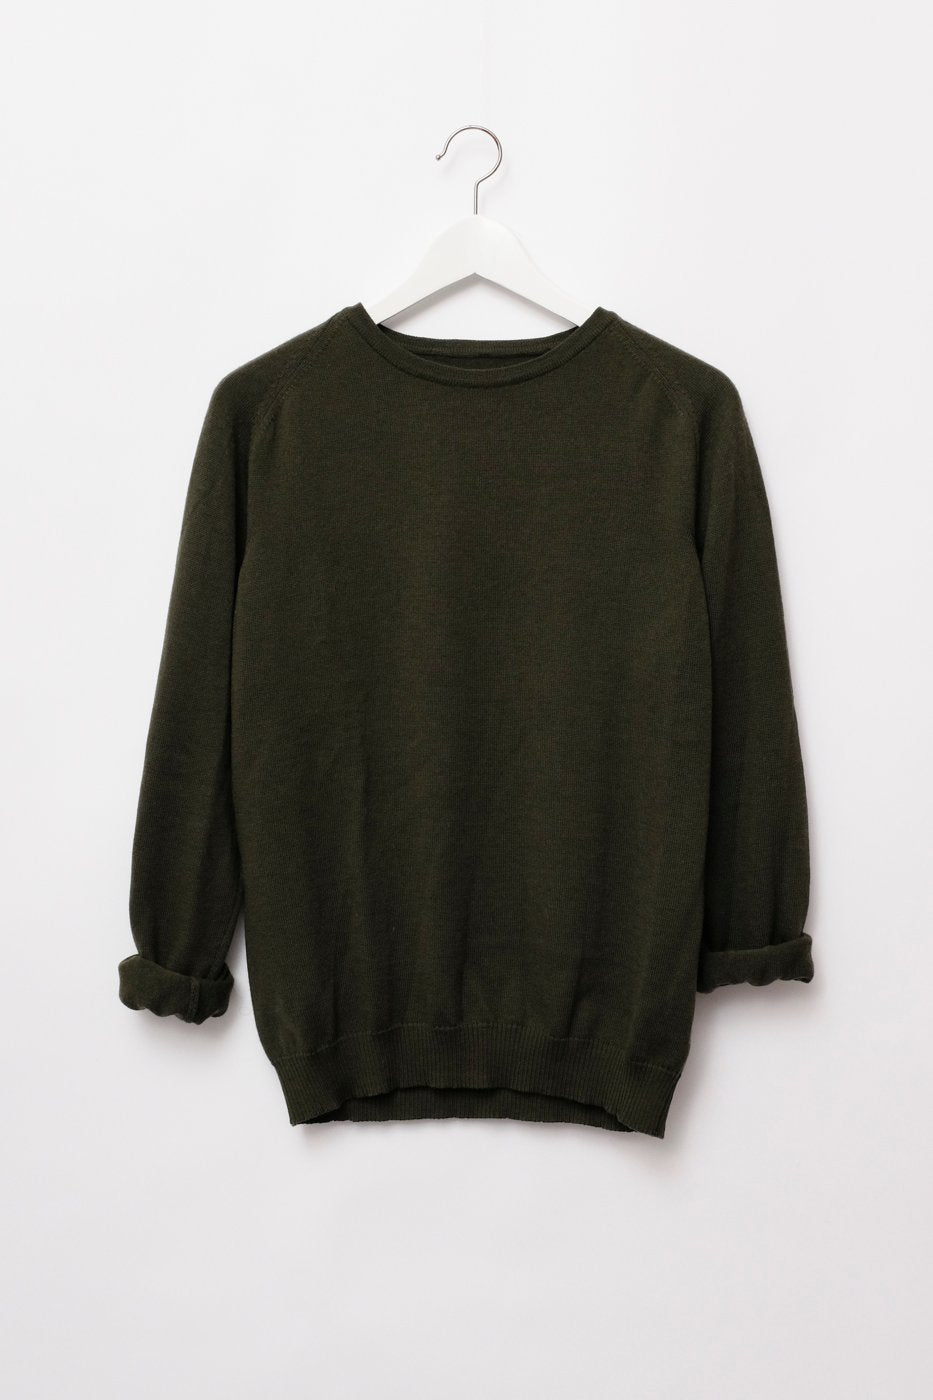 0274_KHAKI COTTON CASHMERE SWEATER